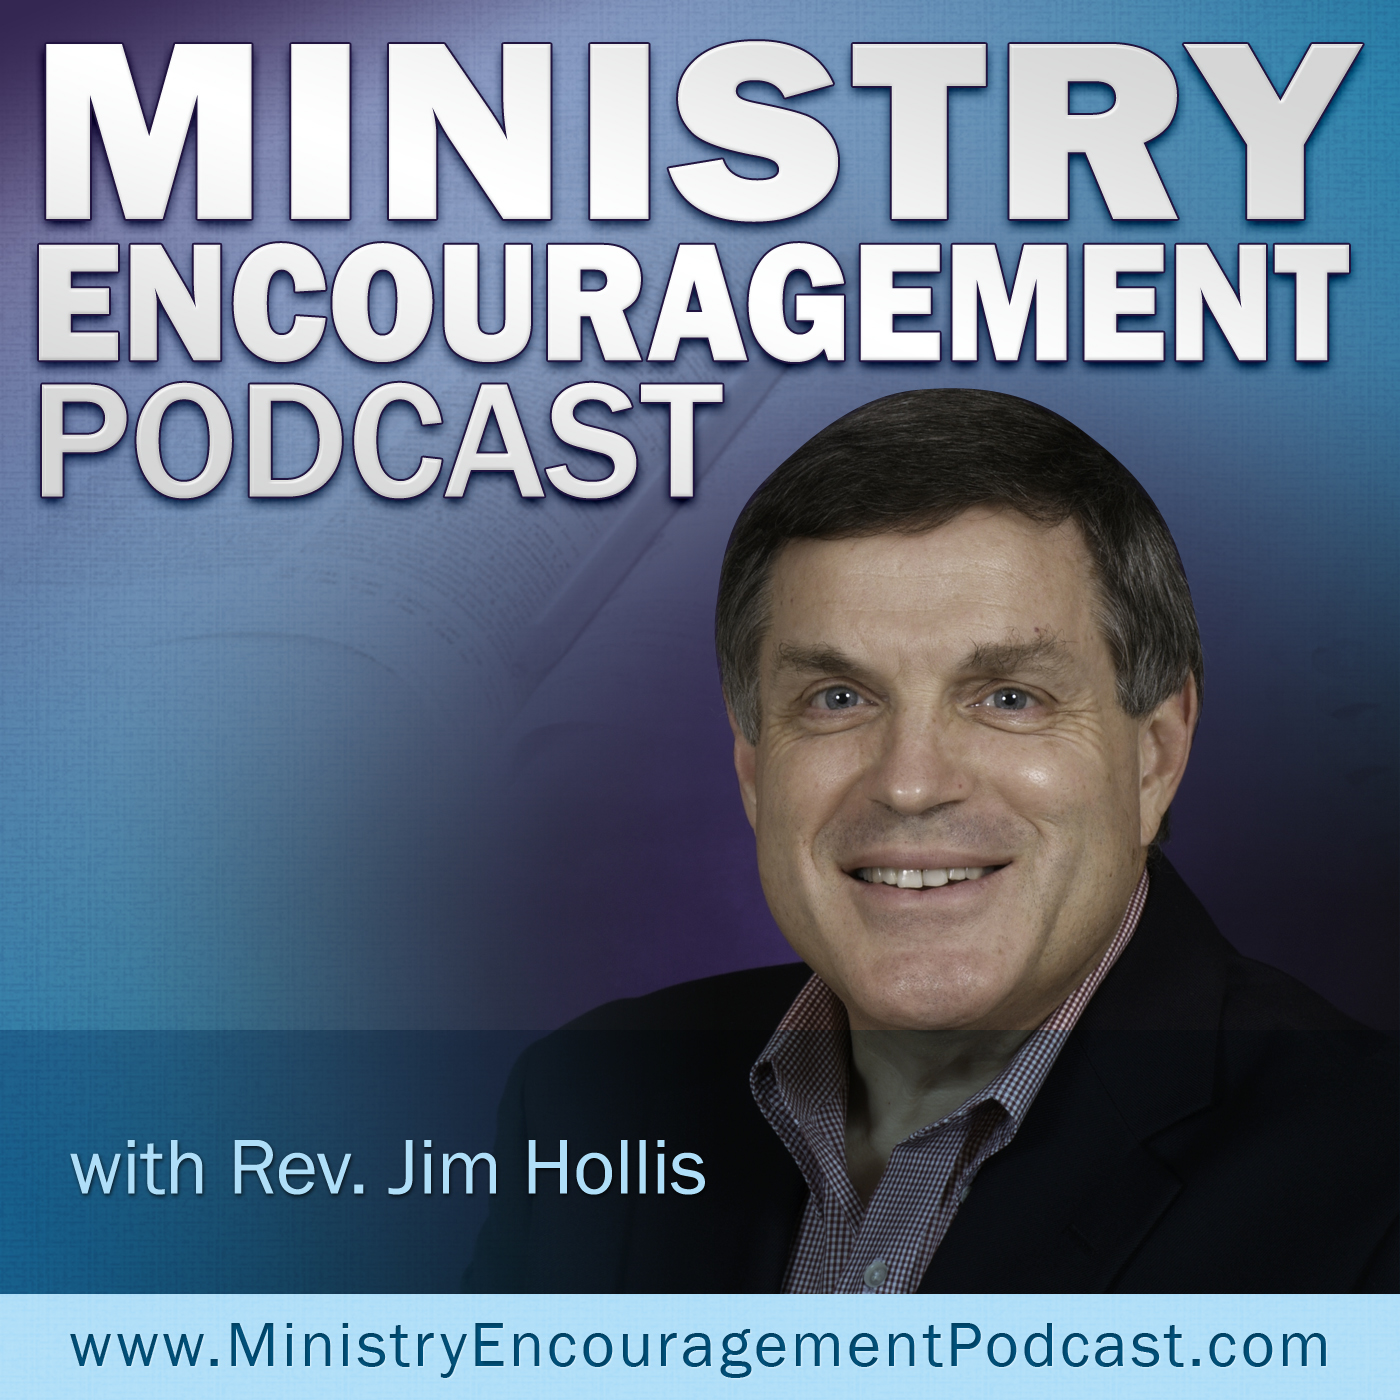 Ministry Encouragement Podcast